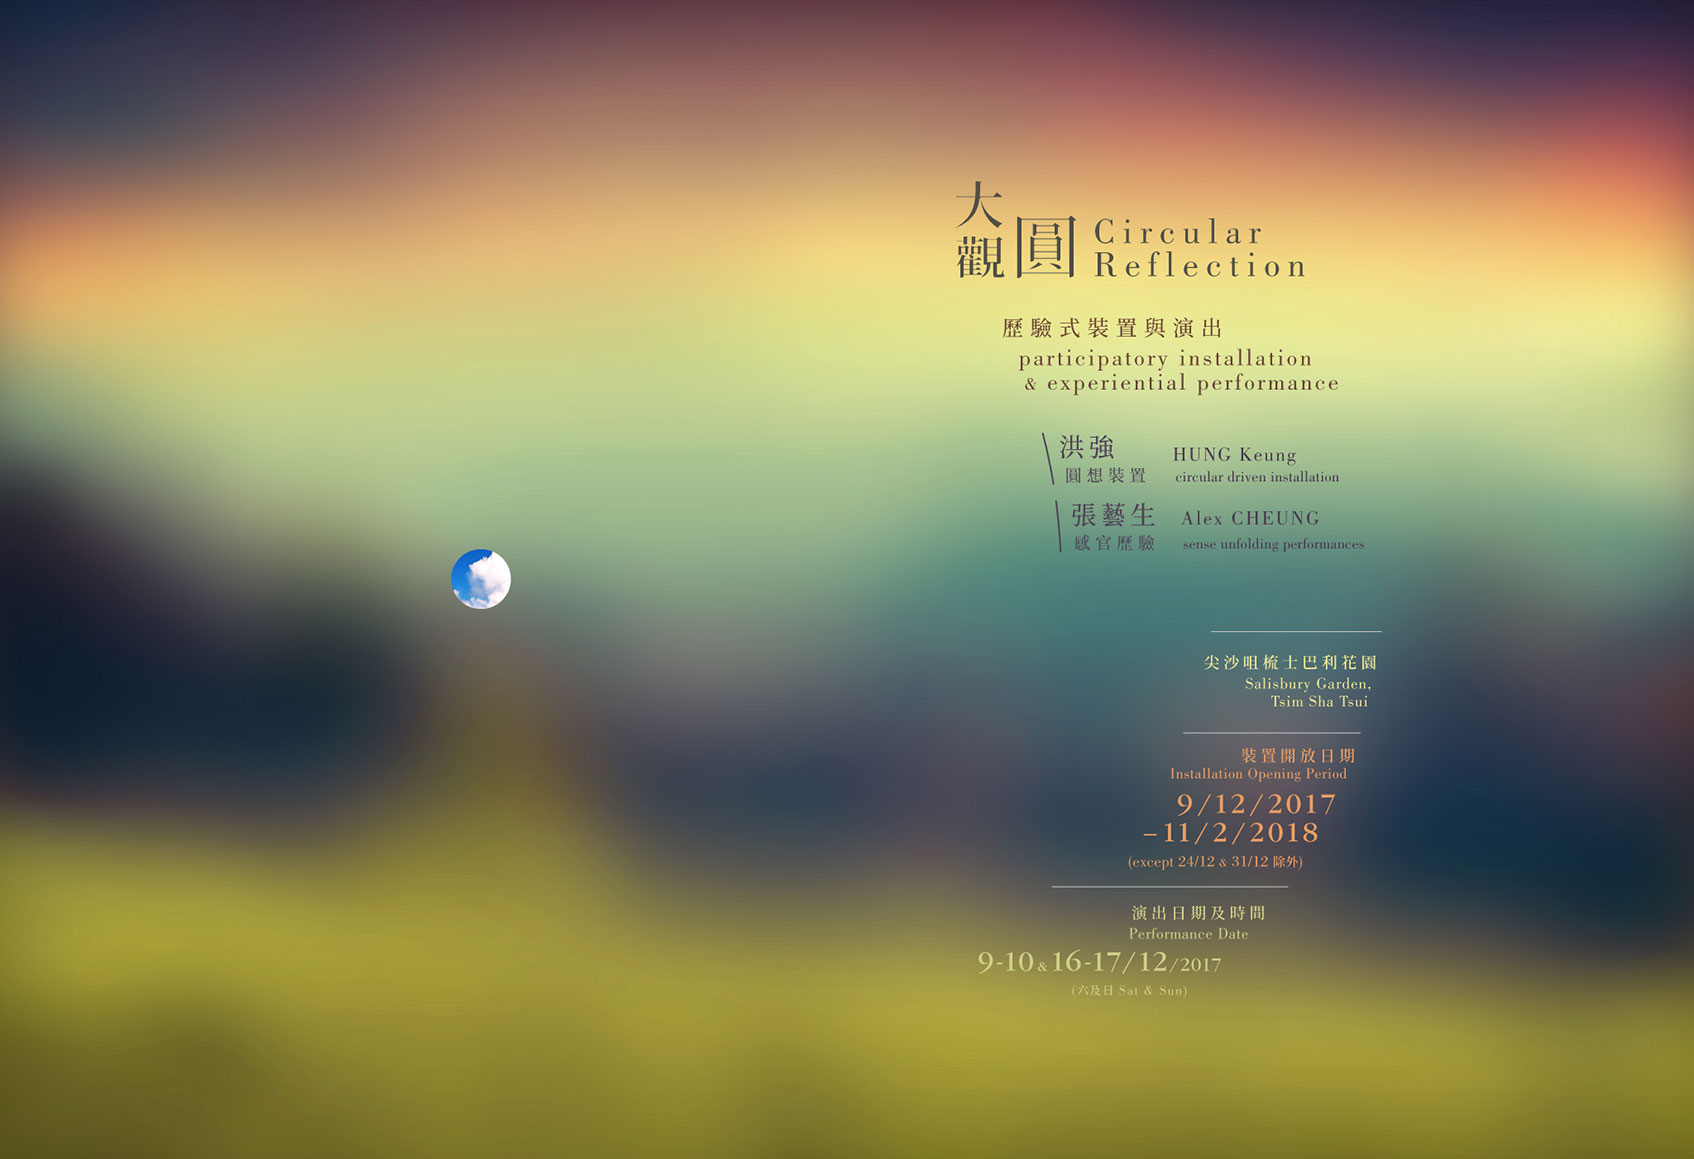 PUTYOURSELF.in ticketing 售票平台 - 大觀圓 Circular Reflection (07 Jan)